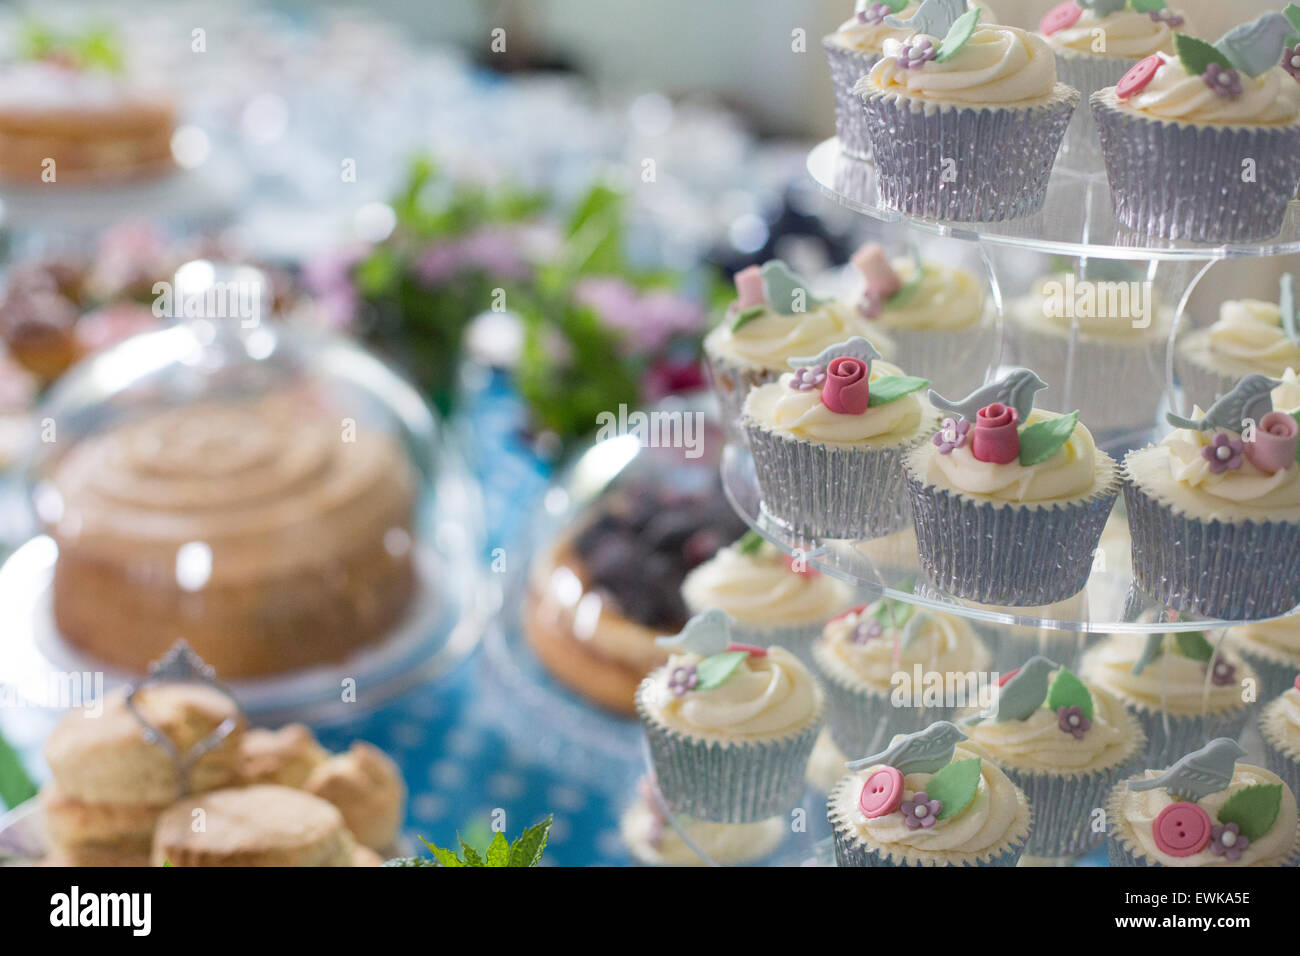 Cup Cakes on Cake Stand - Stock Image